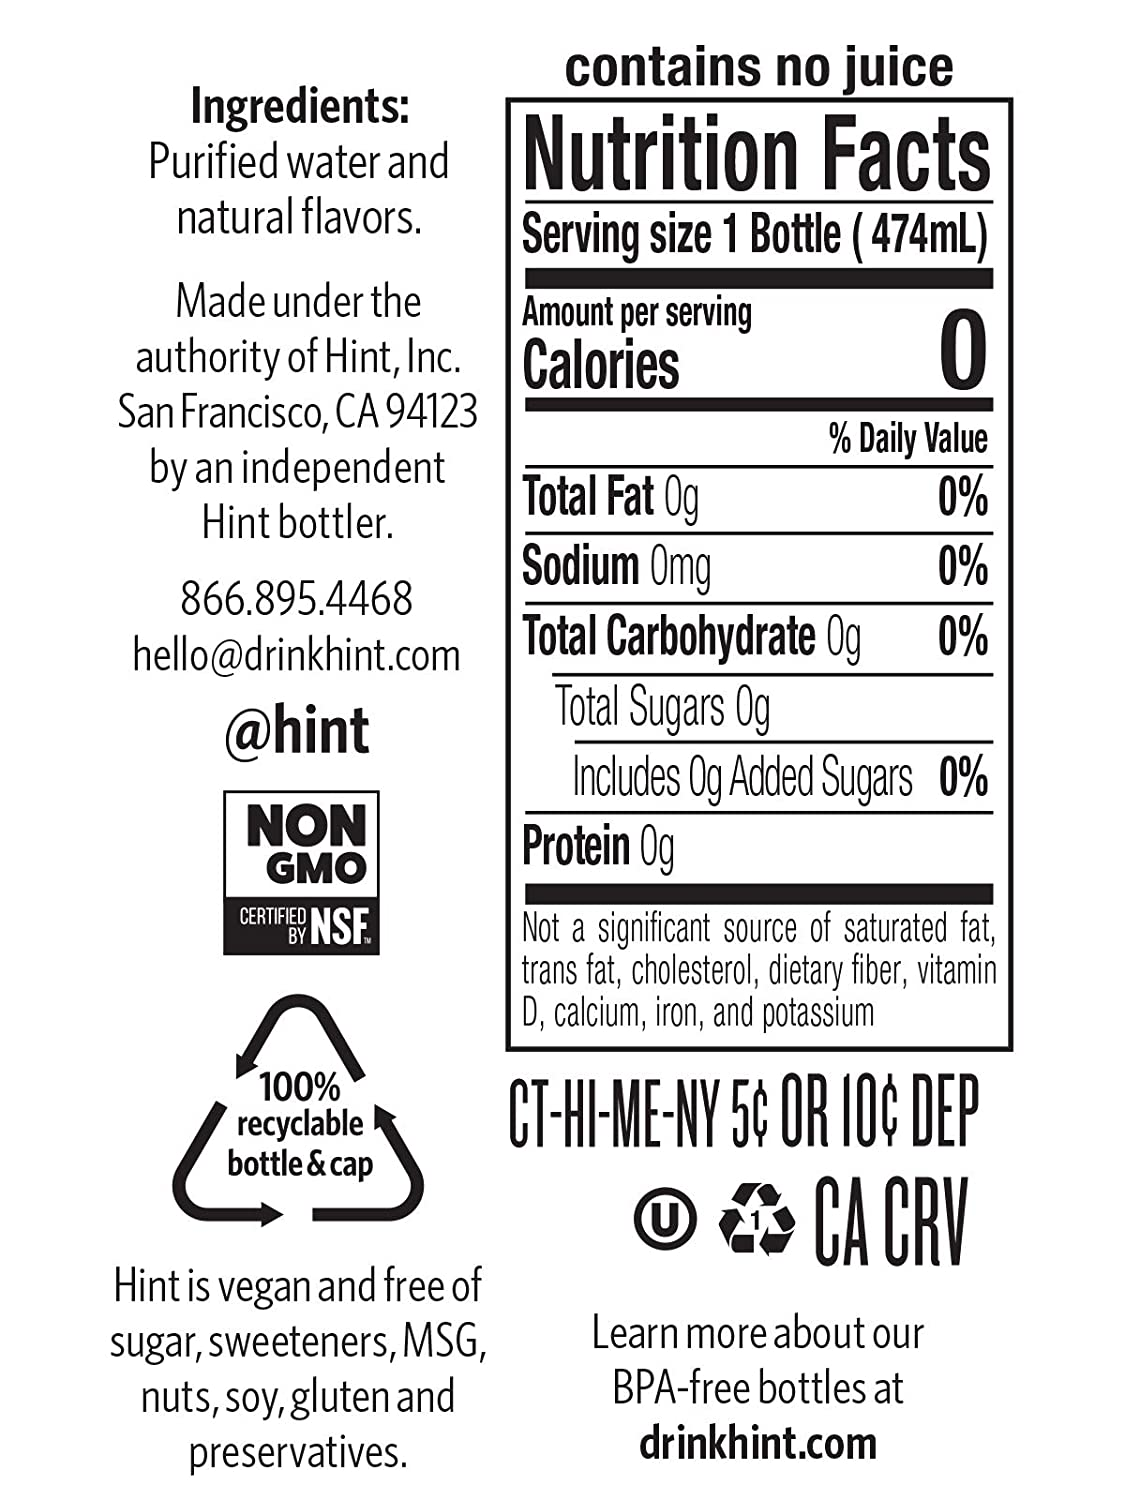 B001HTJ52C Hint Water Strawberry Kiwi (Pack of 12) 16 Ounce Bottles Pure Water Infused with Strawberry Kiwi Zero Sugar Zero Calories Zero Sweeteners Zero Preservatives Zero Artificial Flavors 51kw7V6AxZL